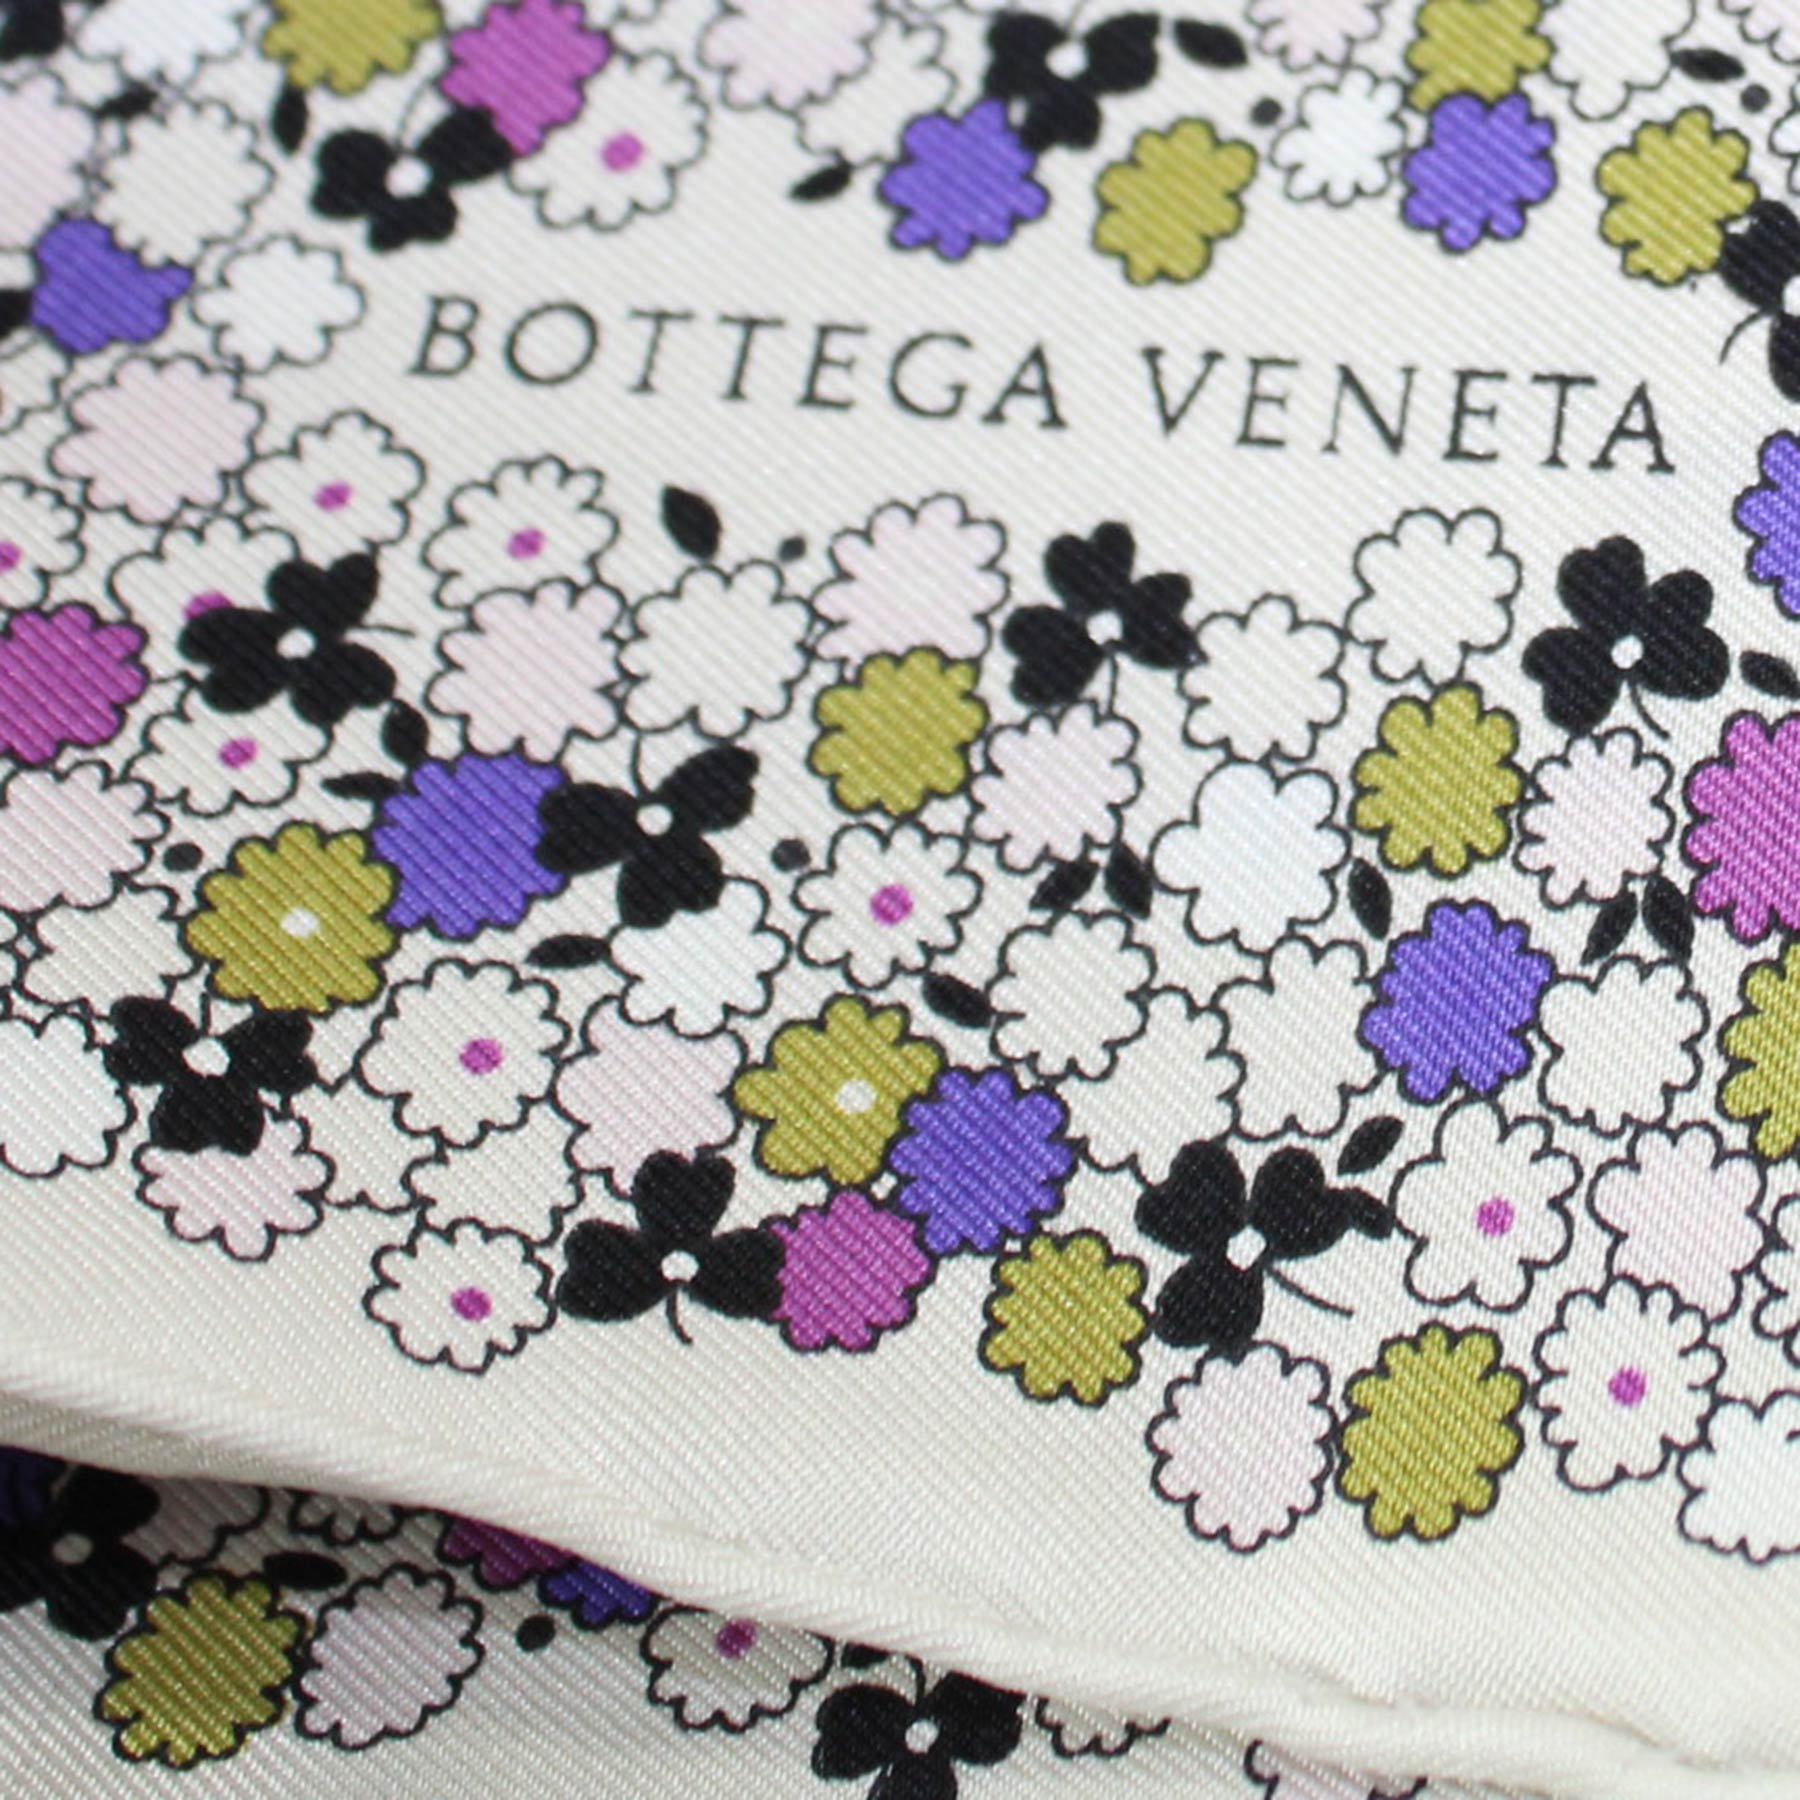 Bottega Veneta Scarf Flowers  Twill Silk Square Scarf